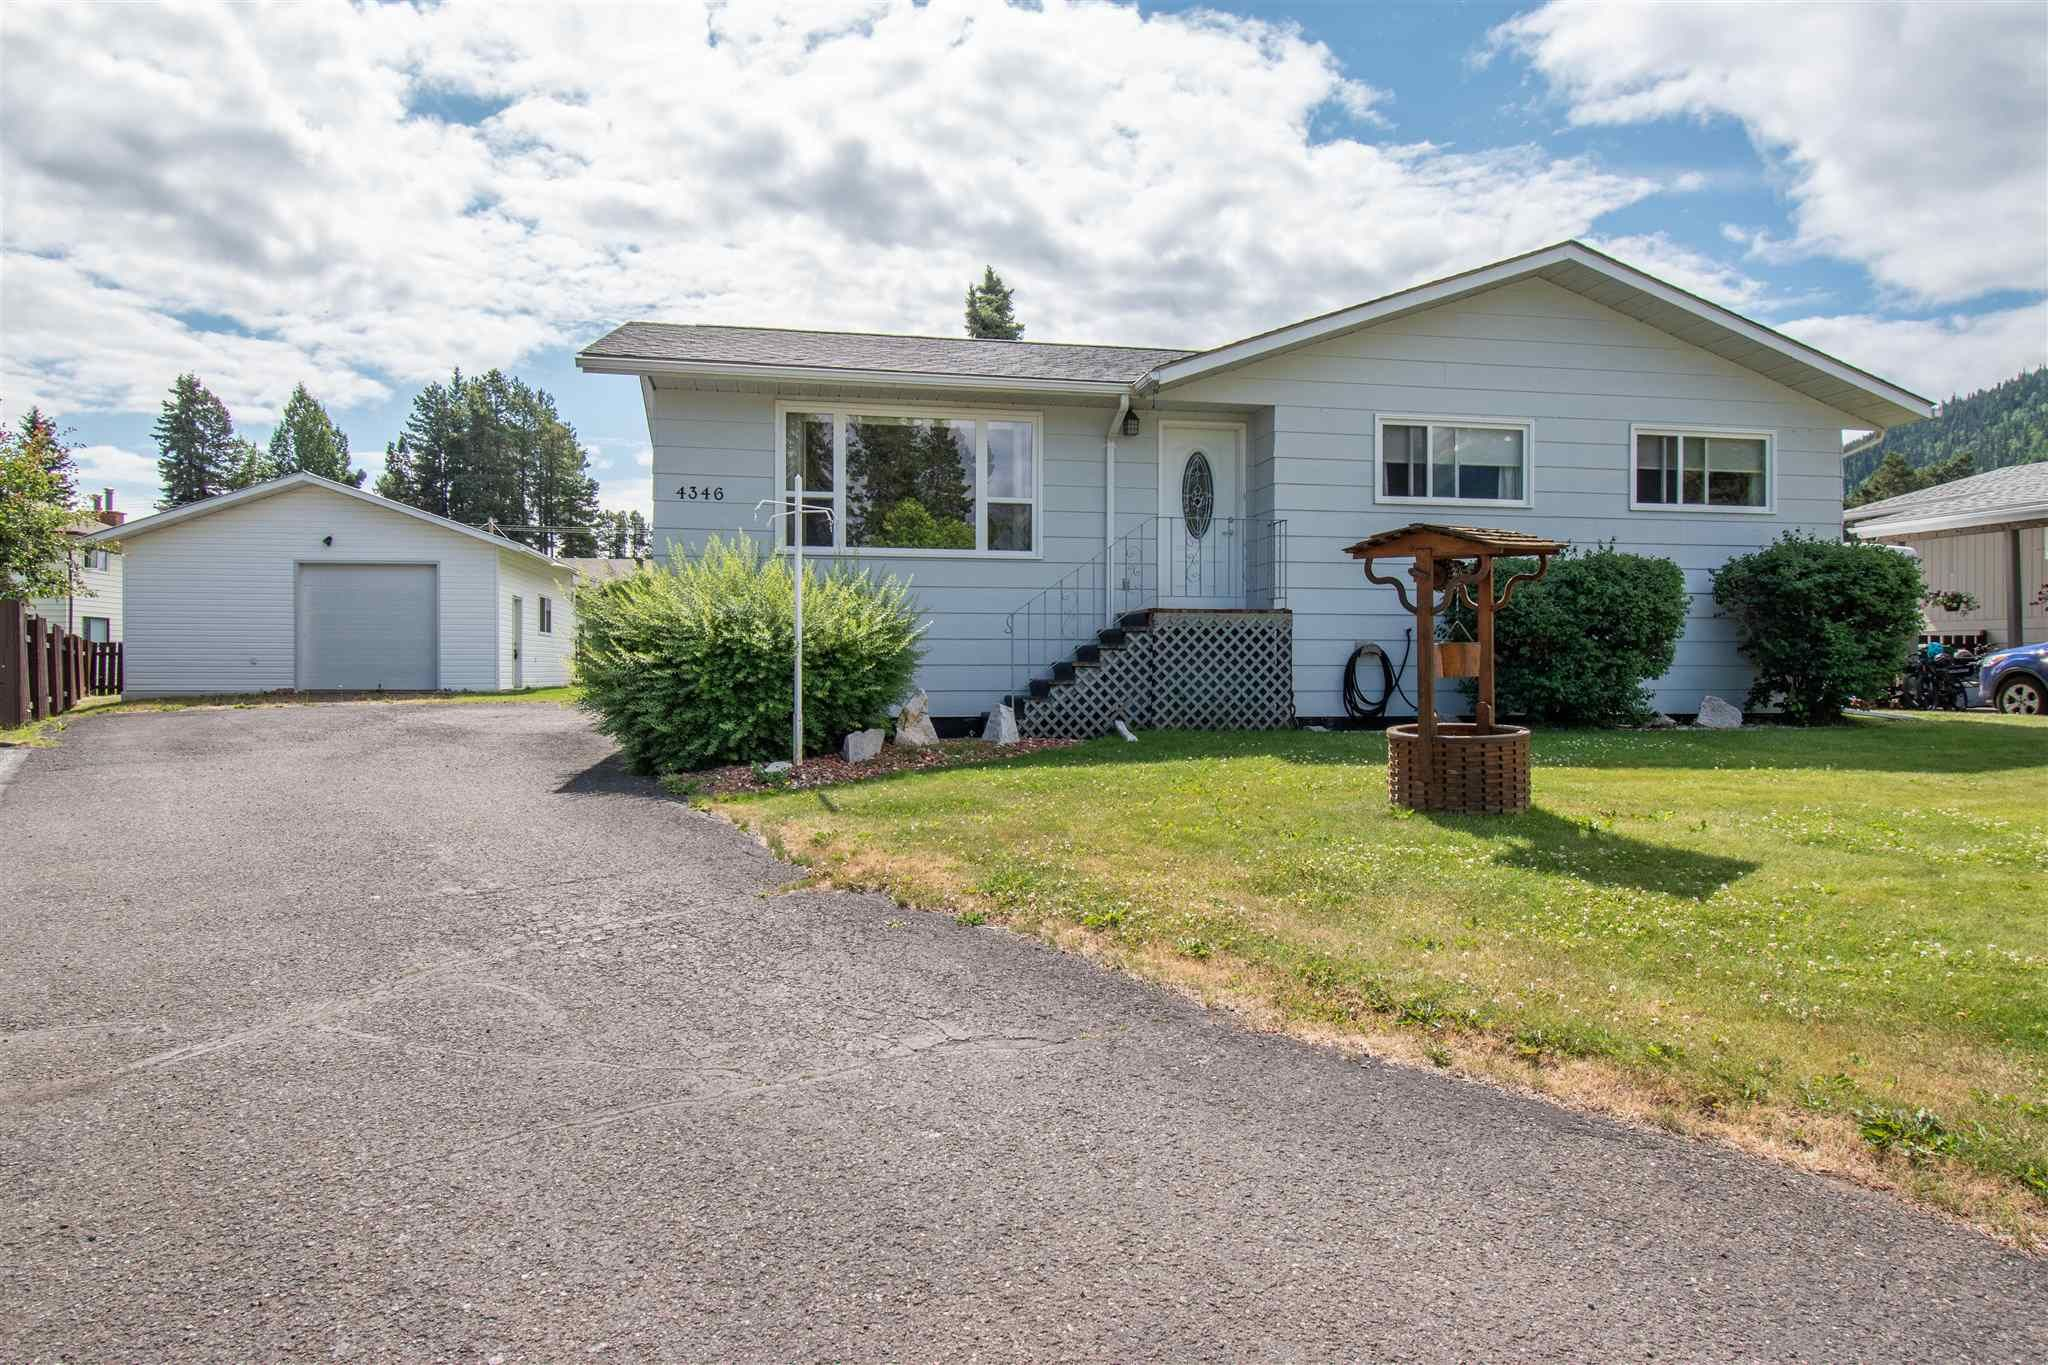 Main Photo: 4346 BIRCH Crescent in Smithers: Smithers - Town House for sale (Smithers And Area (Zone 54))  : MLS®# R2602317